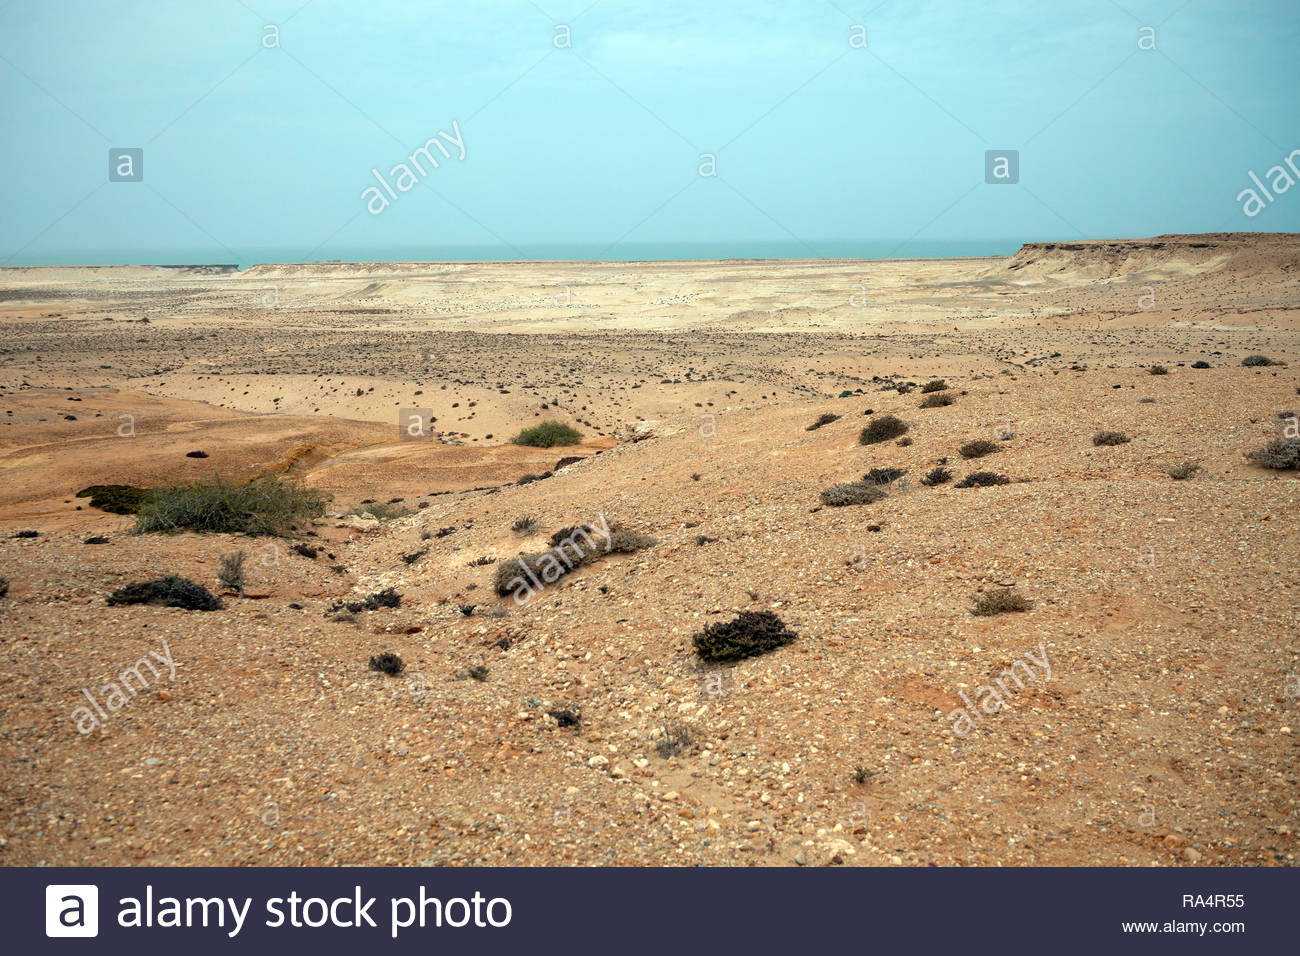 Western sahara stone desert and Atlantic ocean - Stock Image